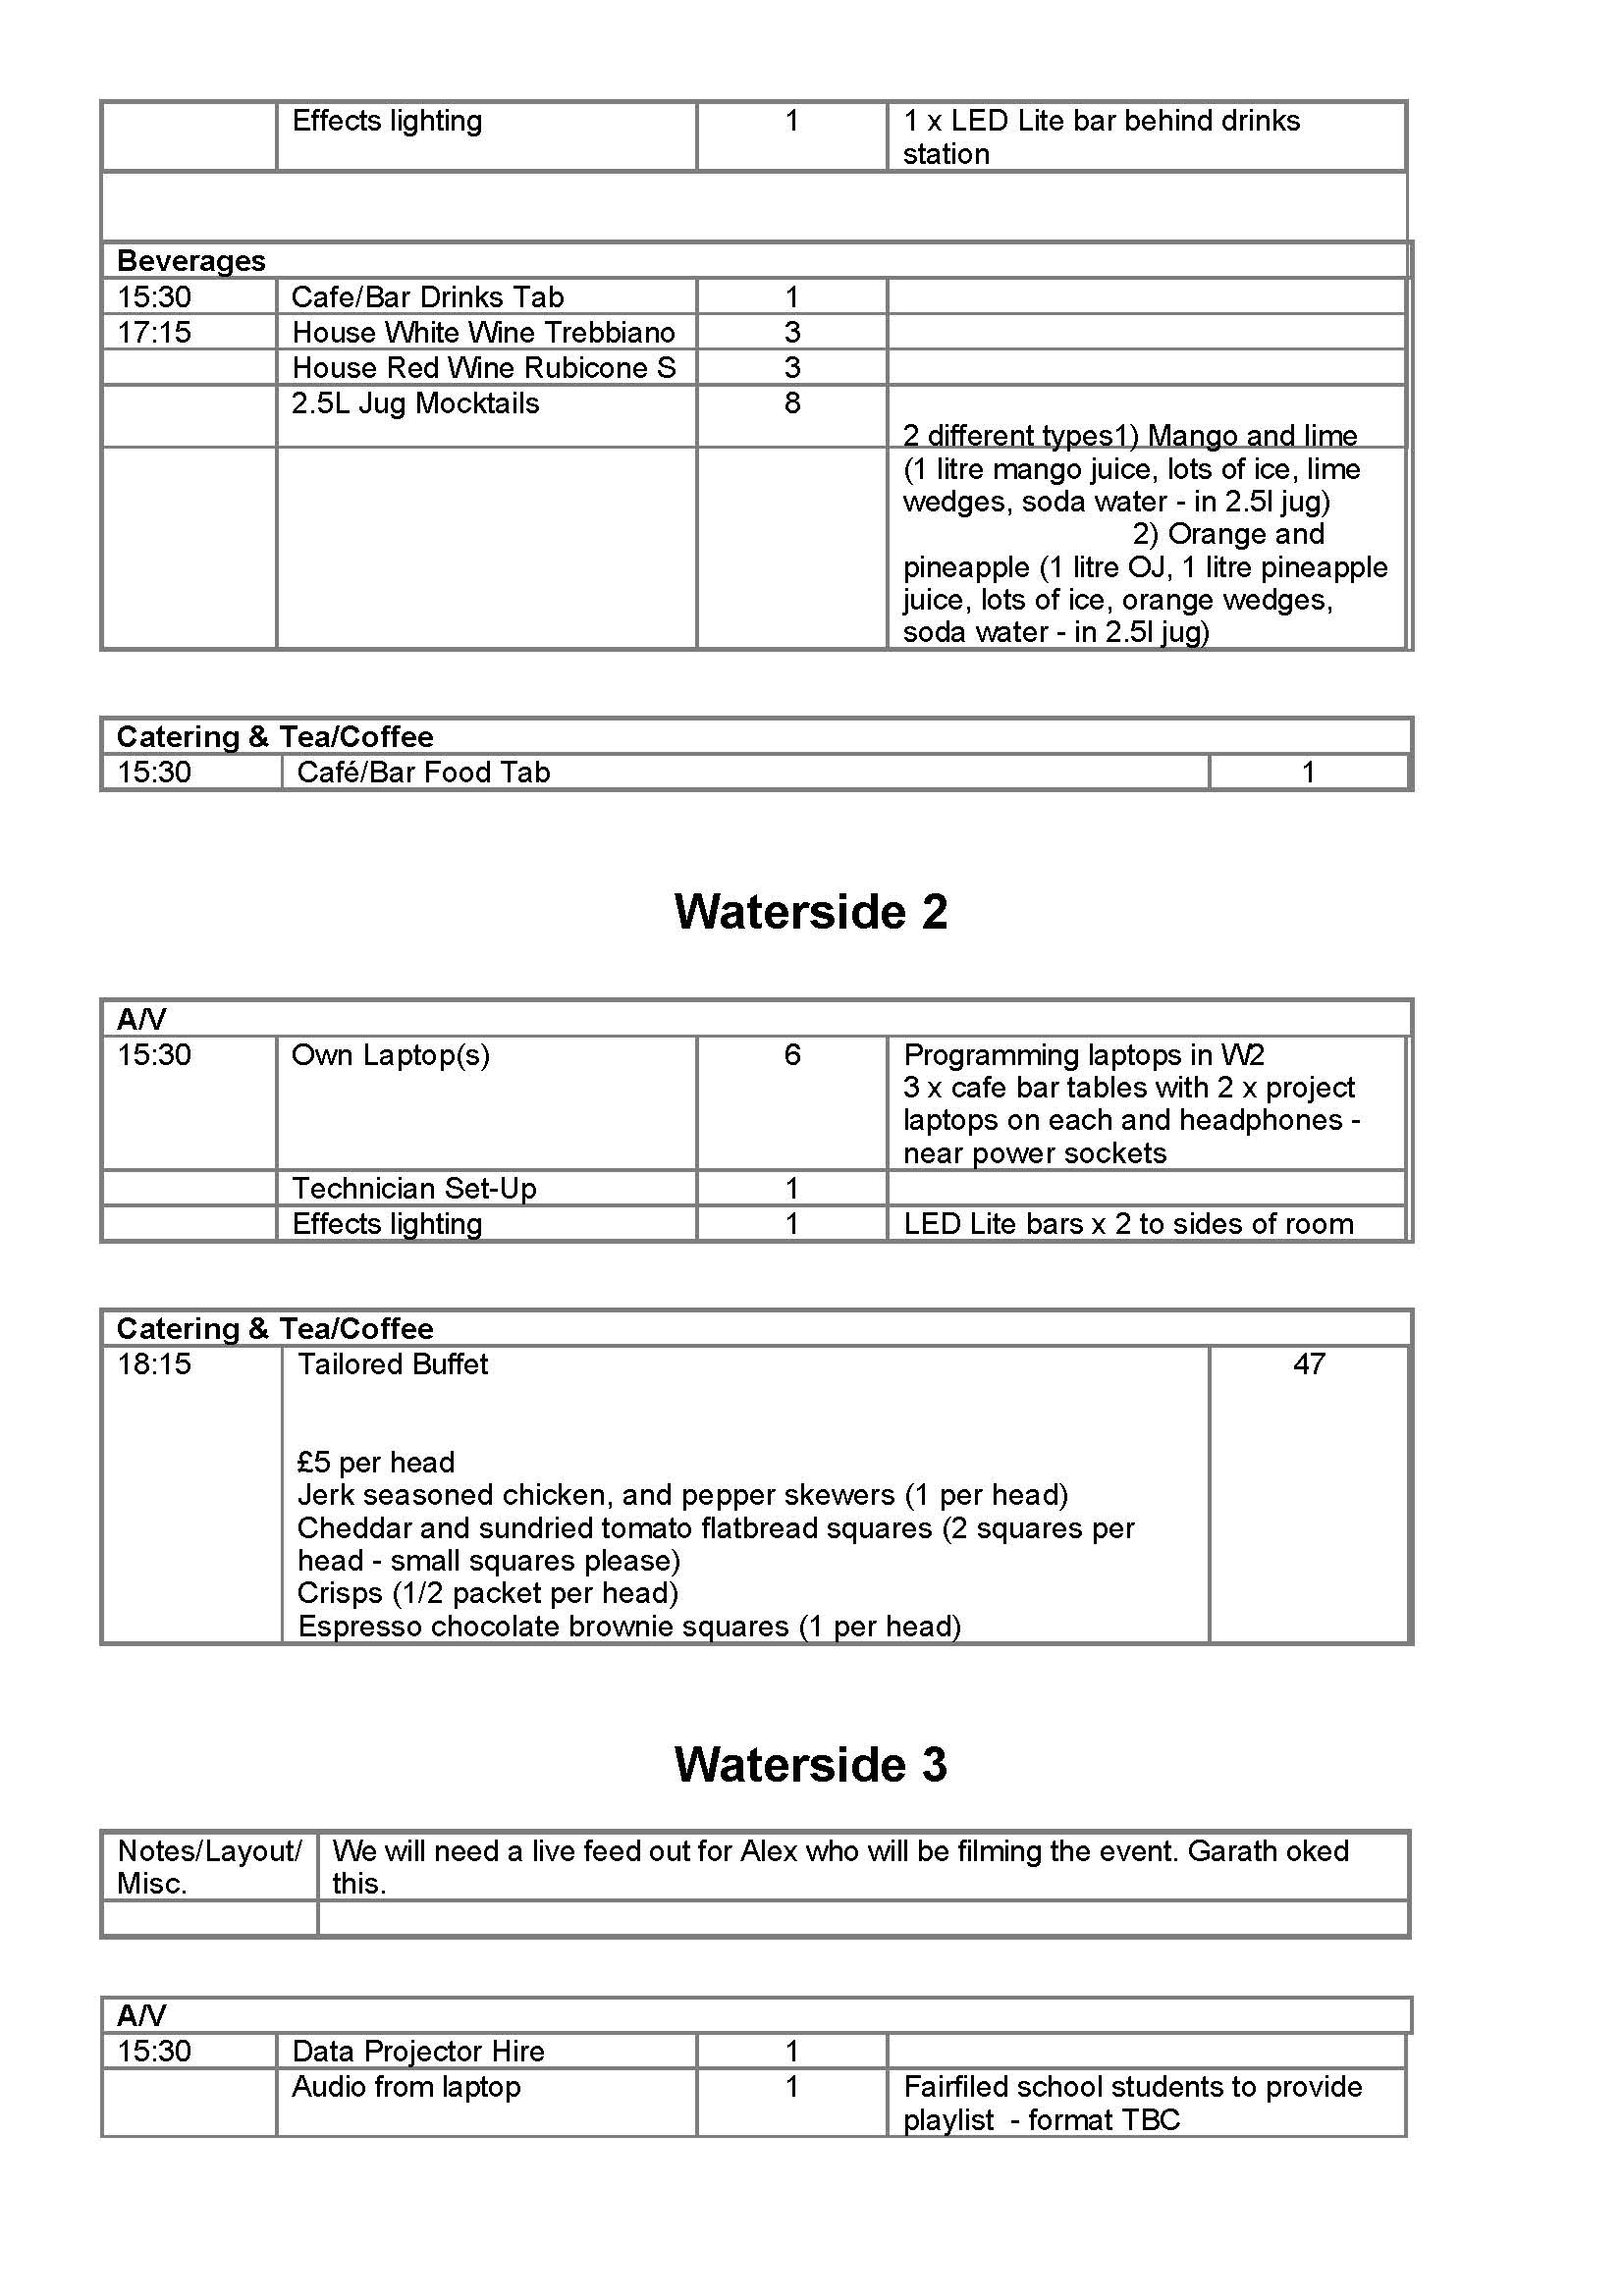 watershed function sheet � arrangement4page2 future